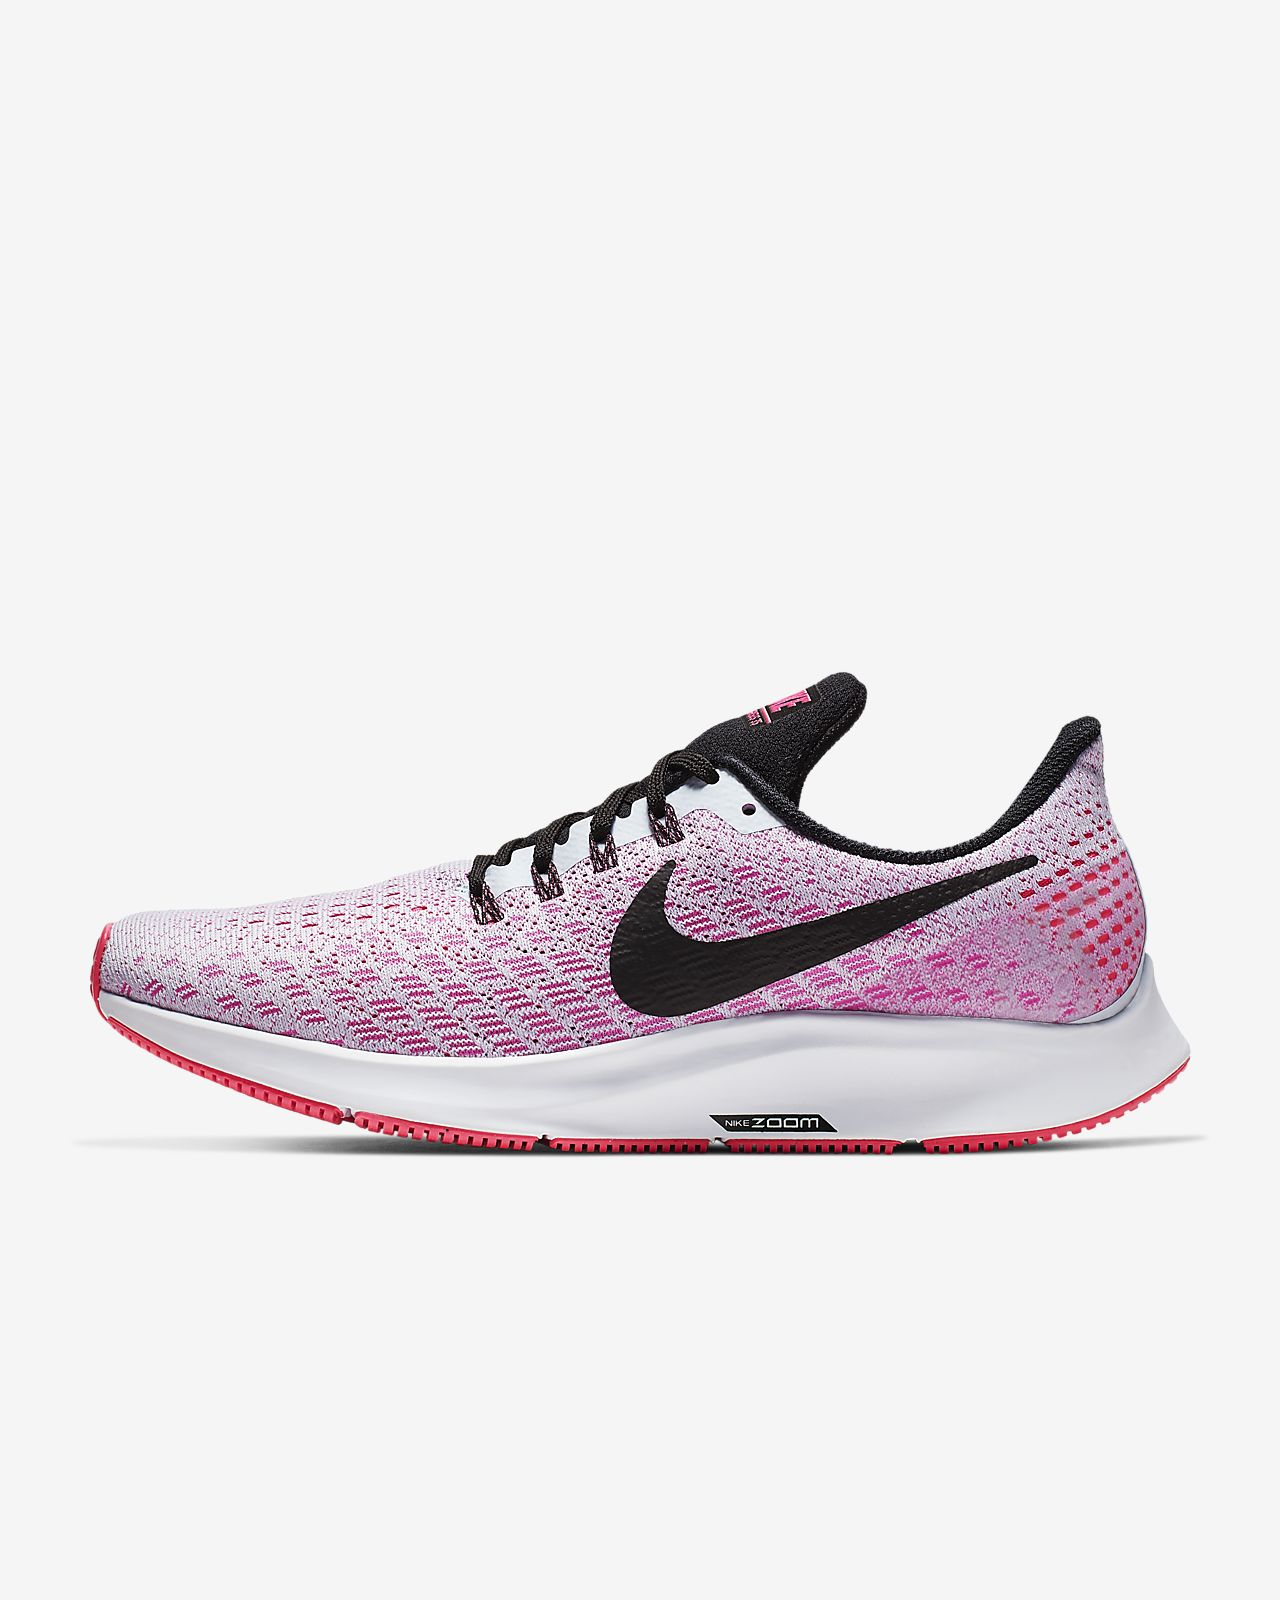 the best attitude b0624 20a25 ... Nike Air Zoom Pegasus 35 Women s Running Shoe